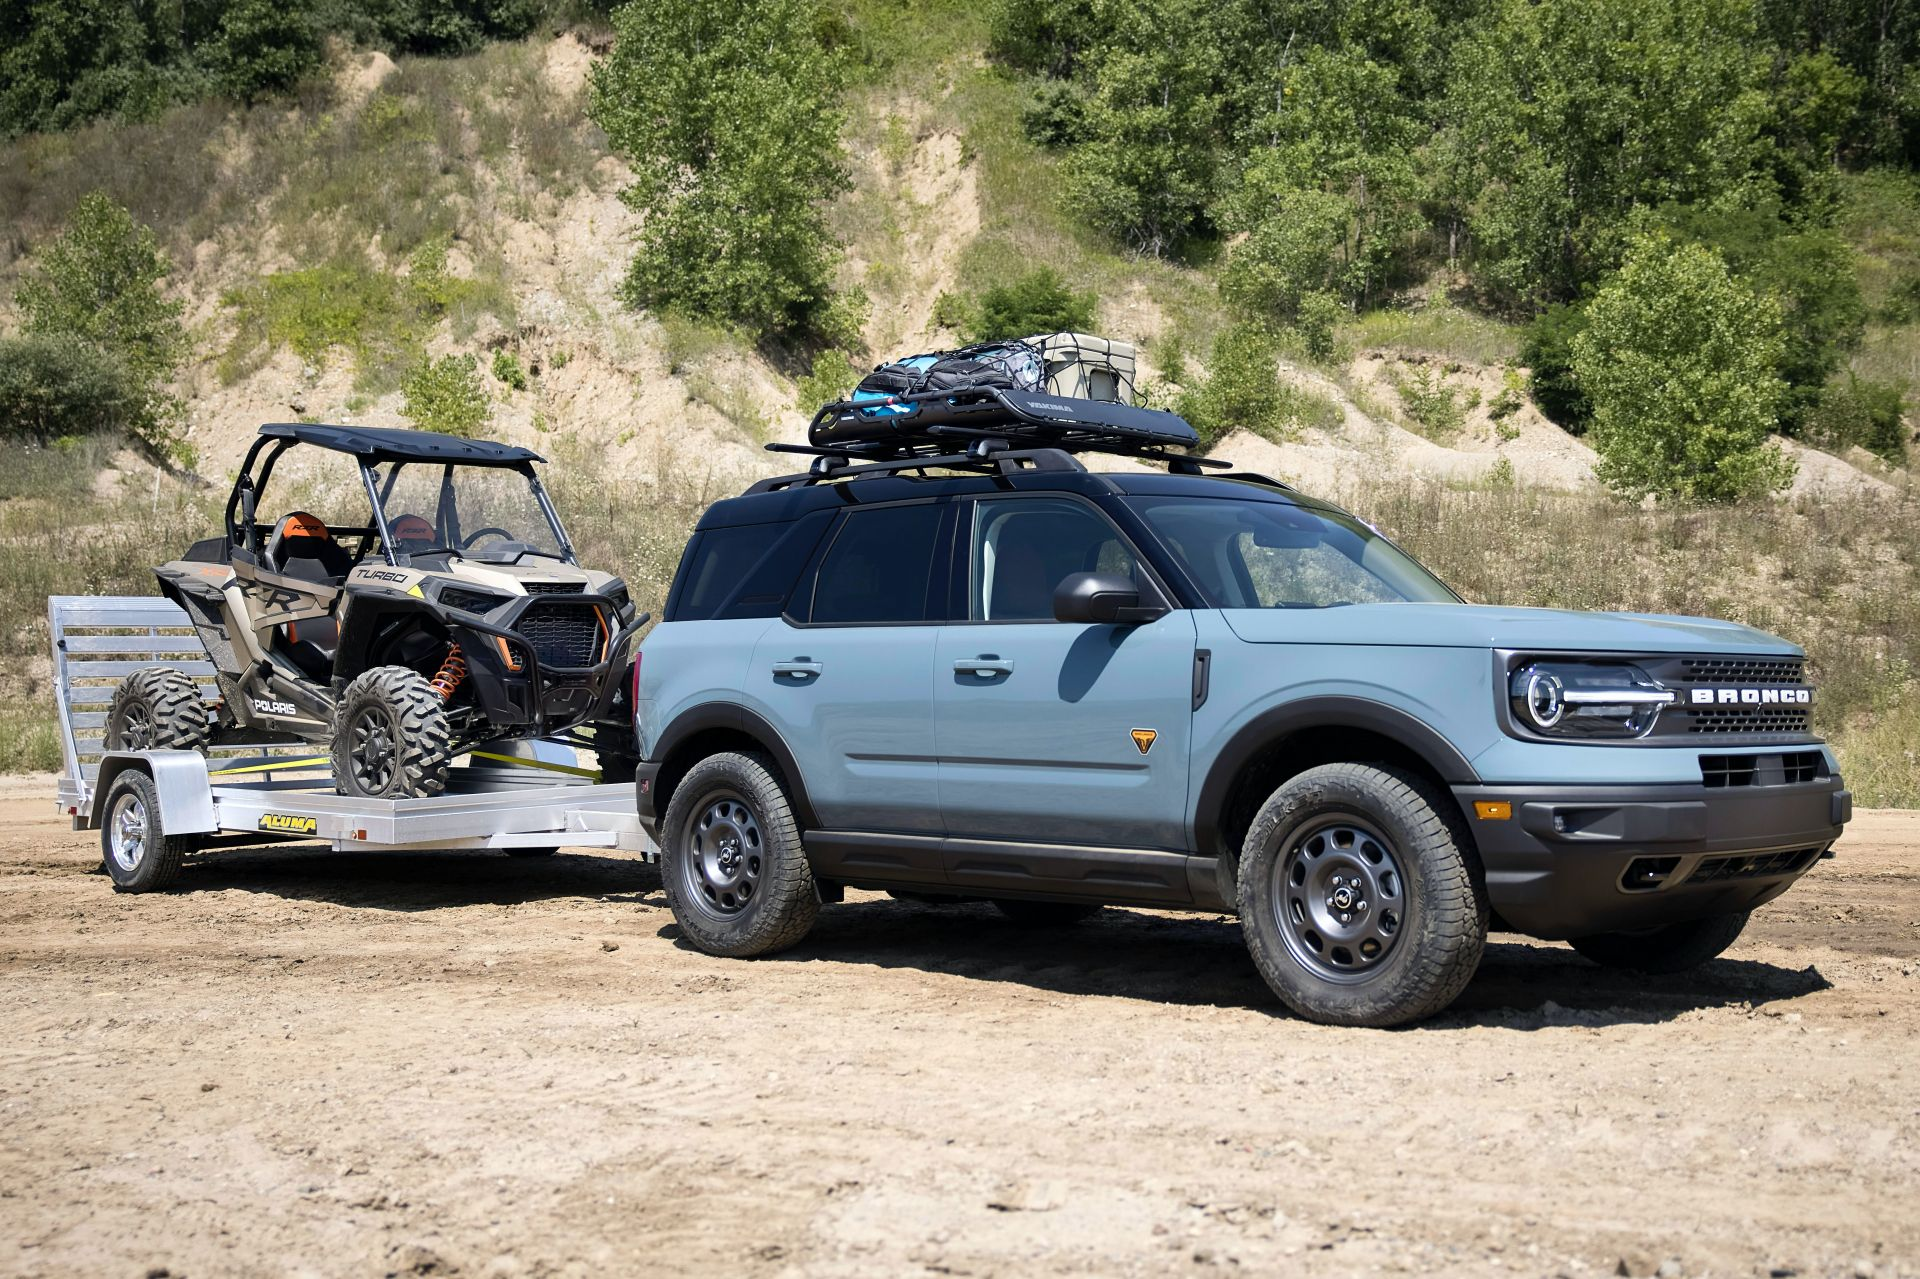 Ford-Bronco-Sport-TOW-RZR-Concept-1